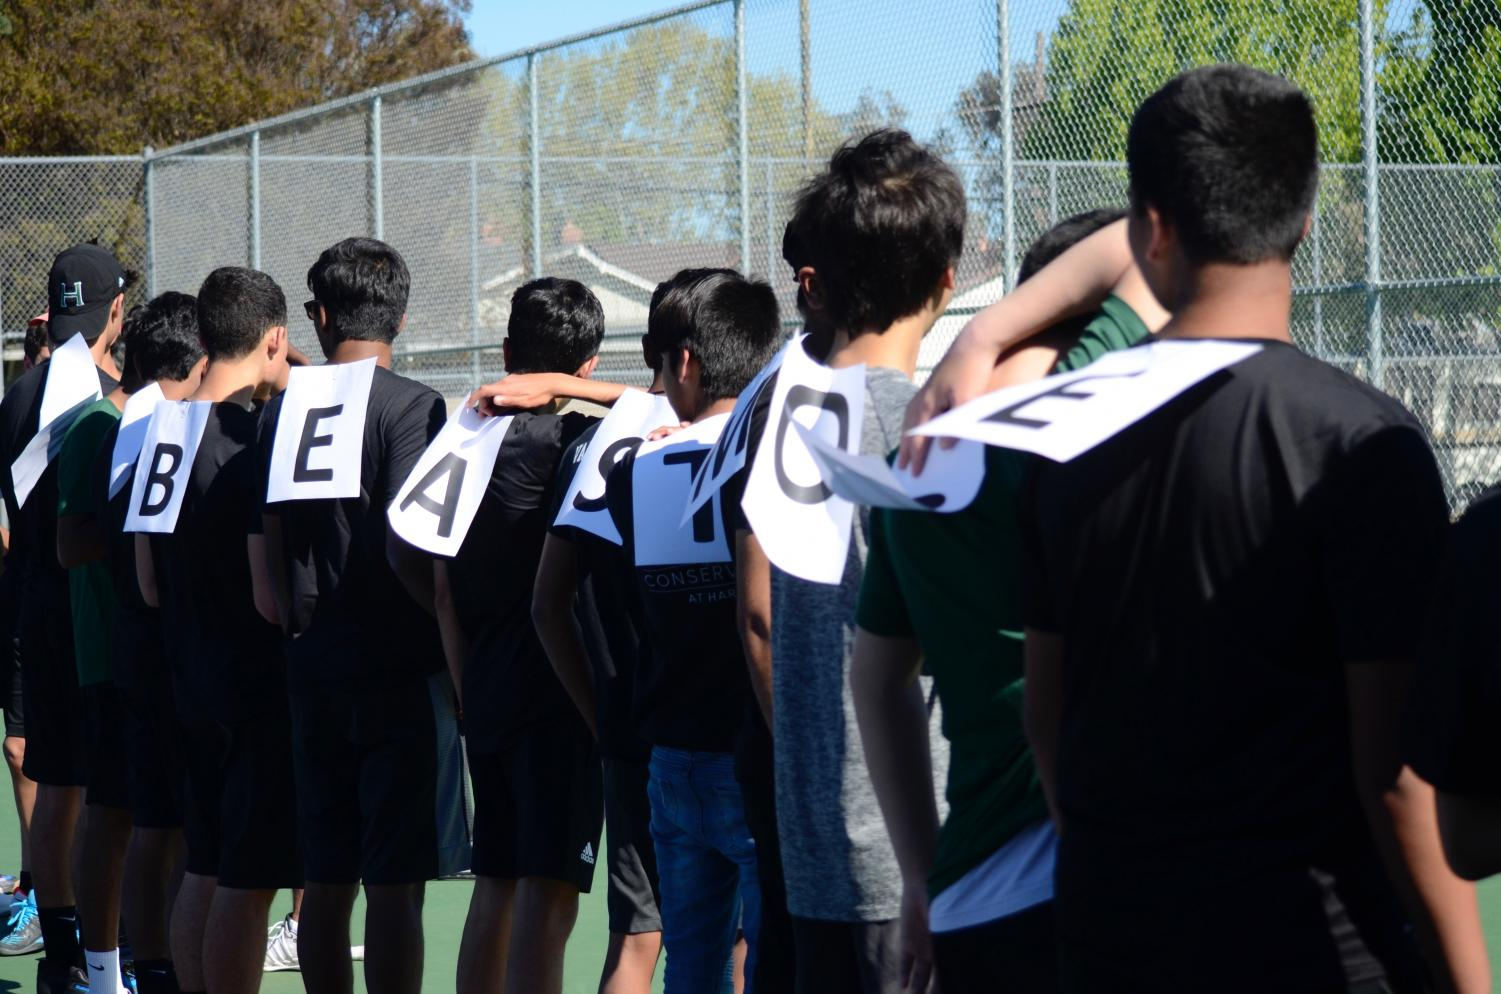 "The team lines up with letters taped to their backs that spell out ""KAISHANT BEAST MODE FOREVER"" to honor the two seniors. 	""Our two seniors have been just massive on the team, just massive supporters and great players. They definitely know how to conduct themselves on and off the court,"" assistant coach Mike Nguyen said. ""[This is] the culmination of their high school experience and its just one of those crucial times where they transition to college."""